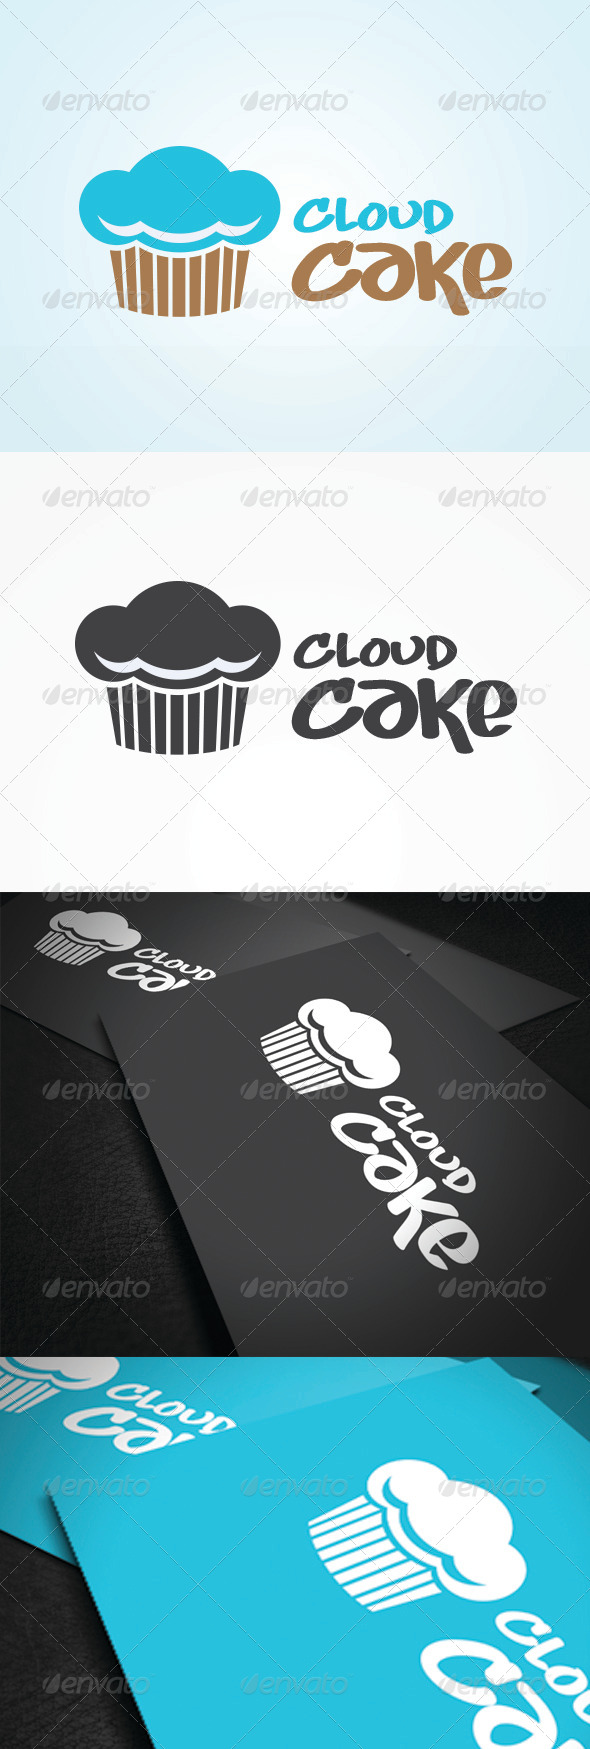 Cloud Cake Logo Template - Vector Abstract